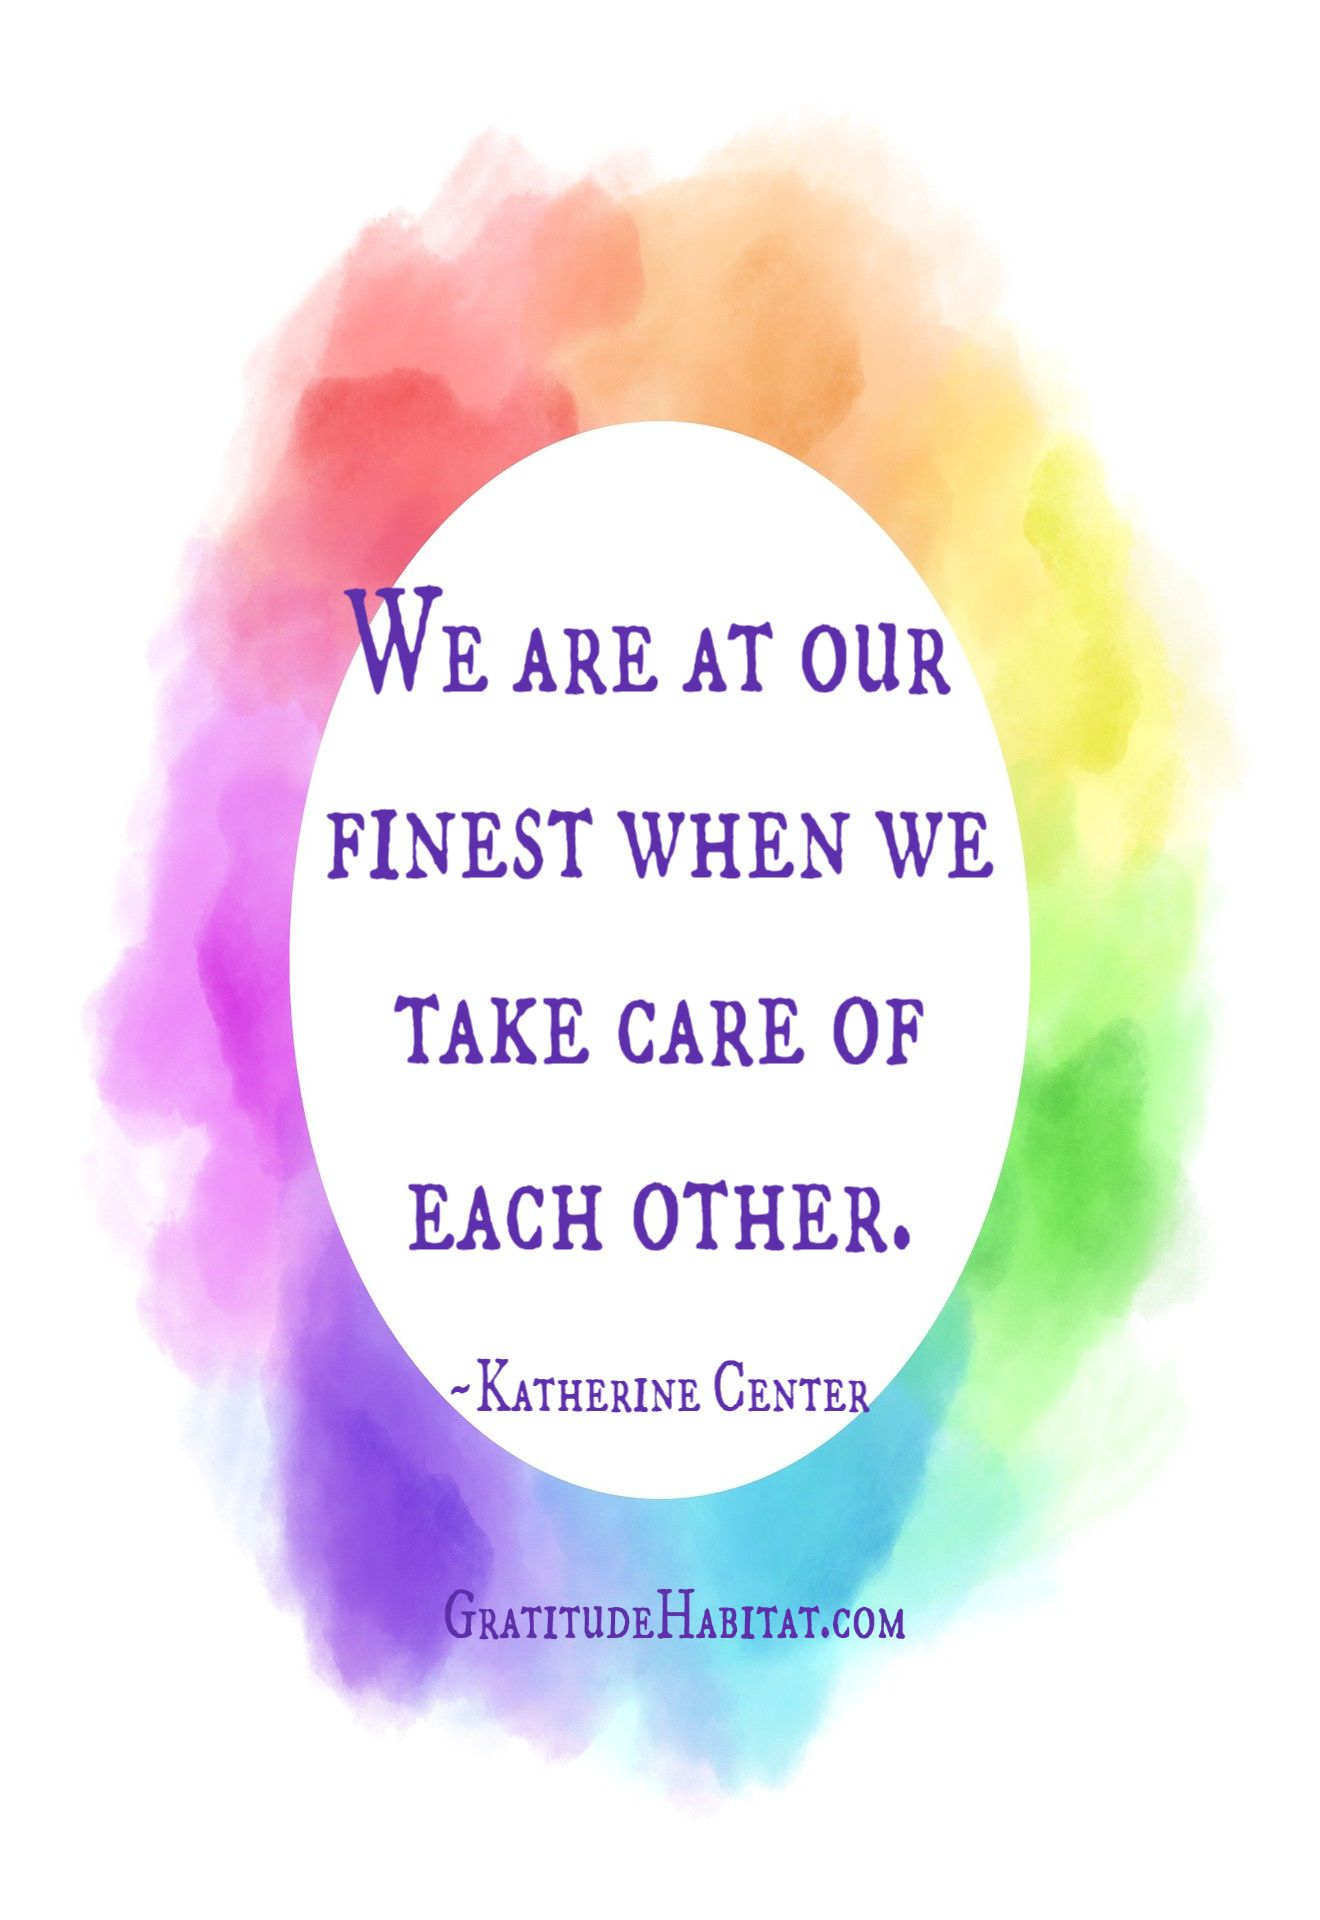 Take Care Of Each Other Powerful Words Words Of Wisdom Personal Development Blog Posts